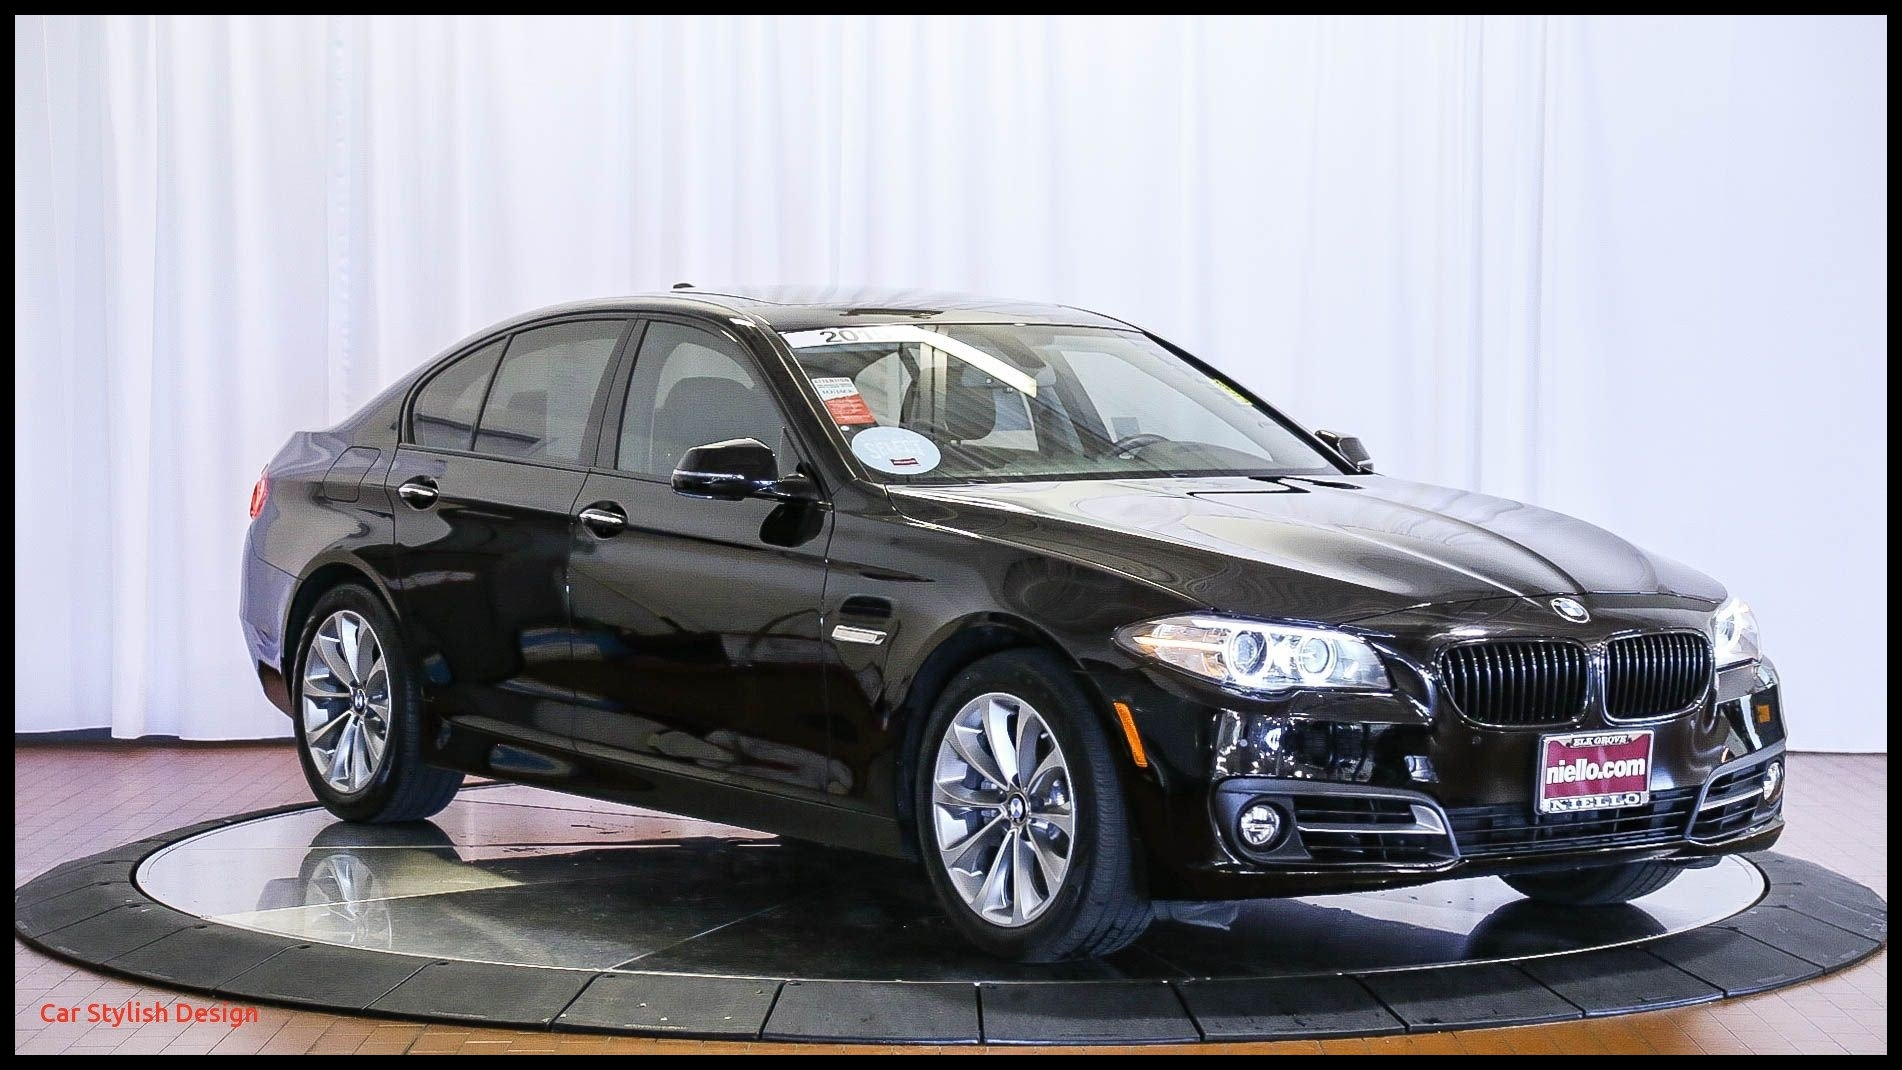 2016 Bmw 5 Series Beautiful Niello Bmw Elk Grove Stock E 2015 Bmw 5 Series 528i